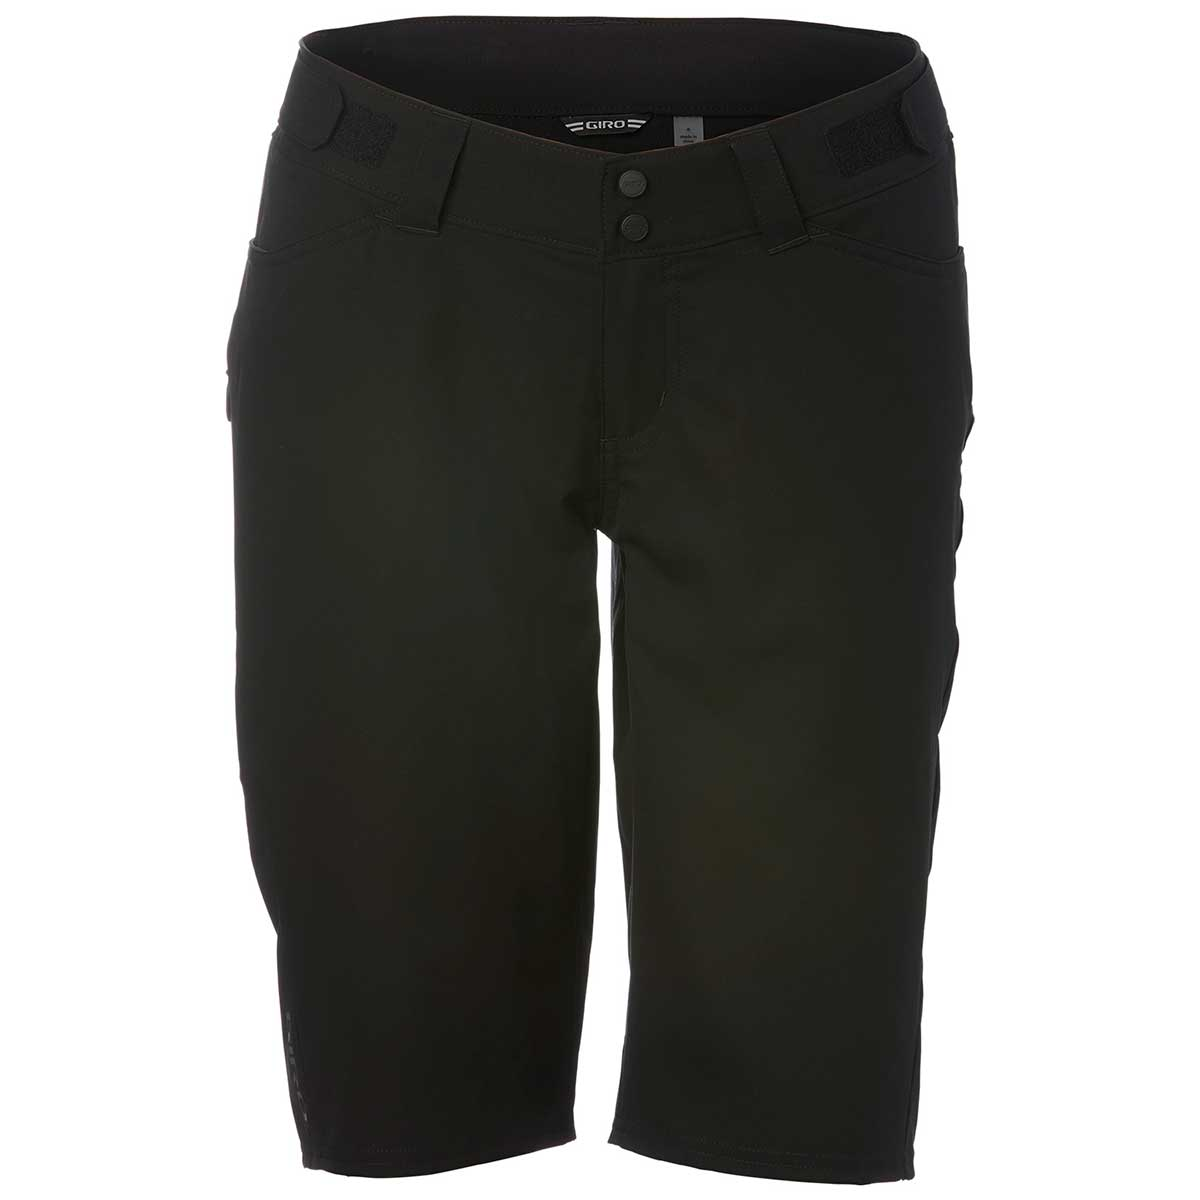 Giro women's Arc Short with Liner in Black liner view